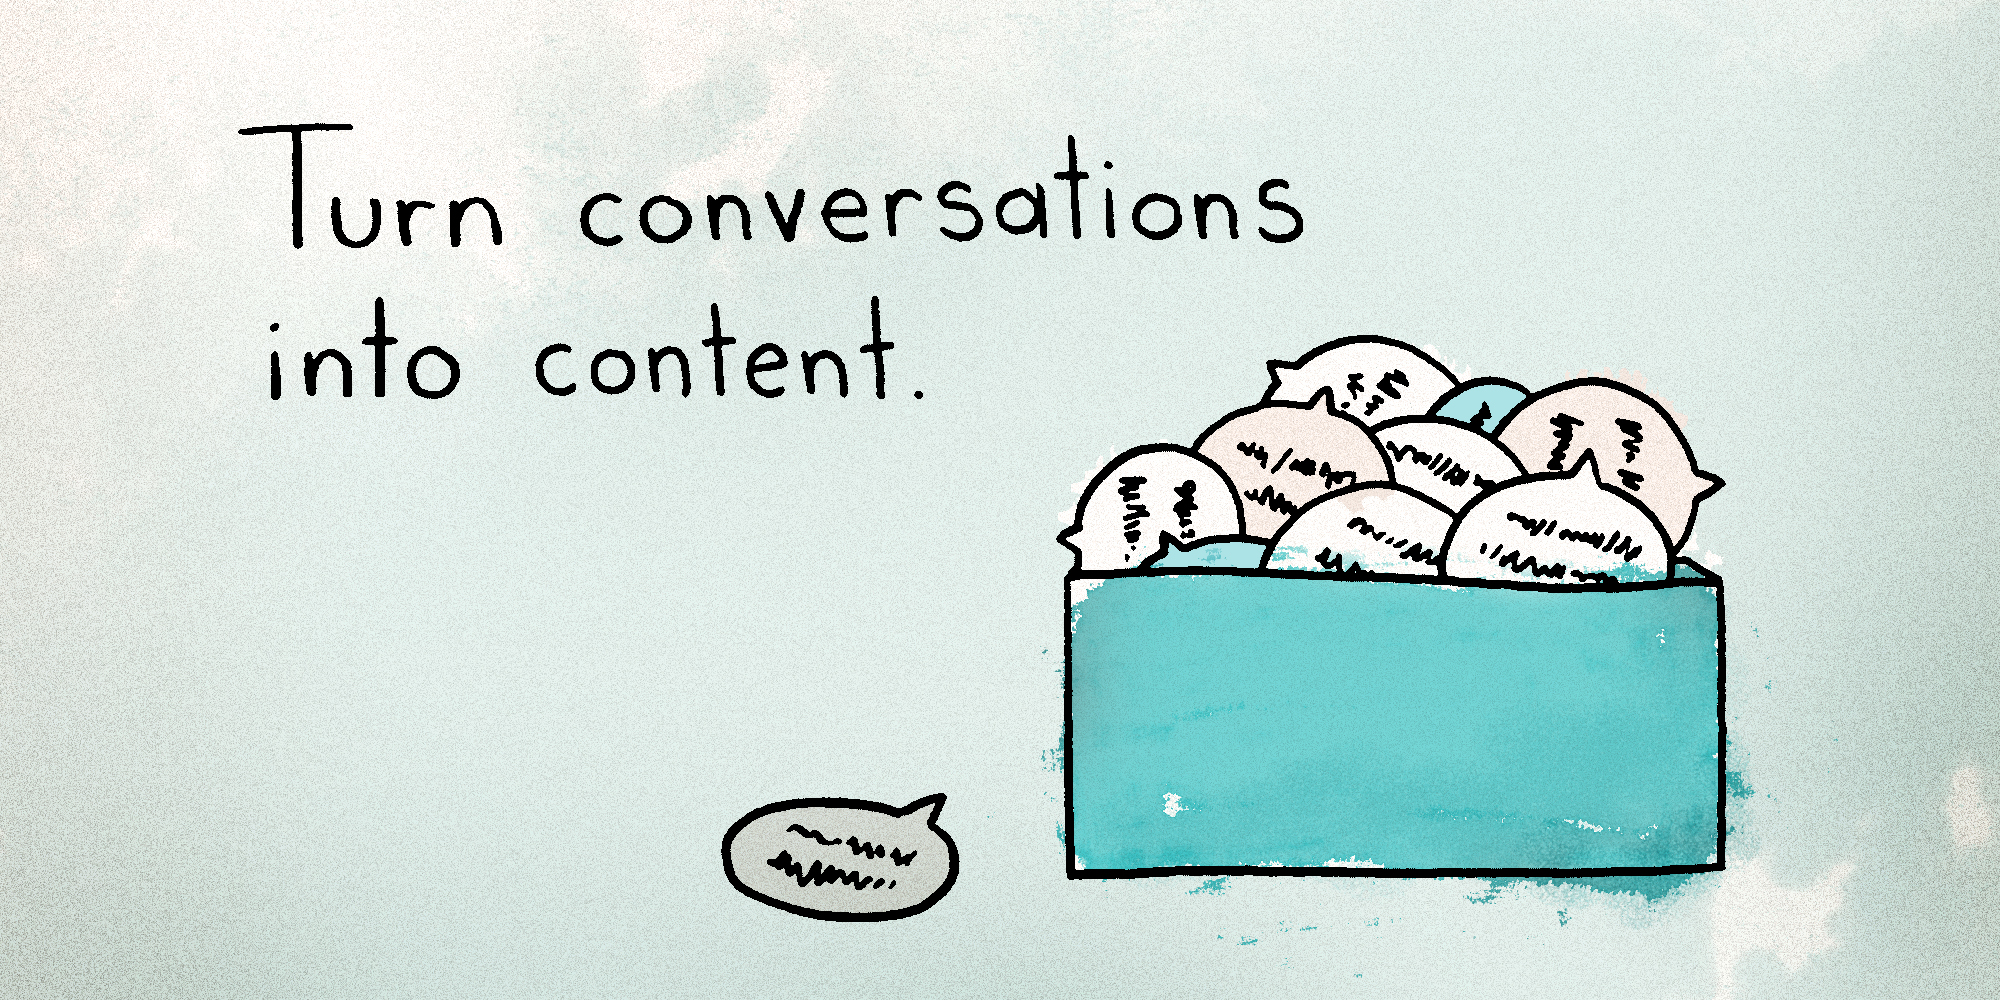 Turn Conversations into Content